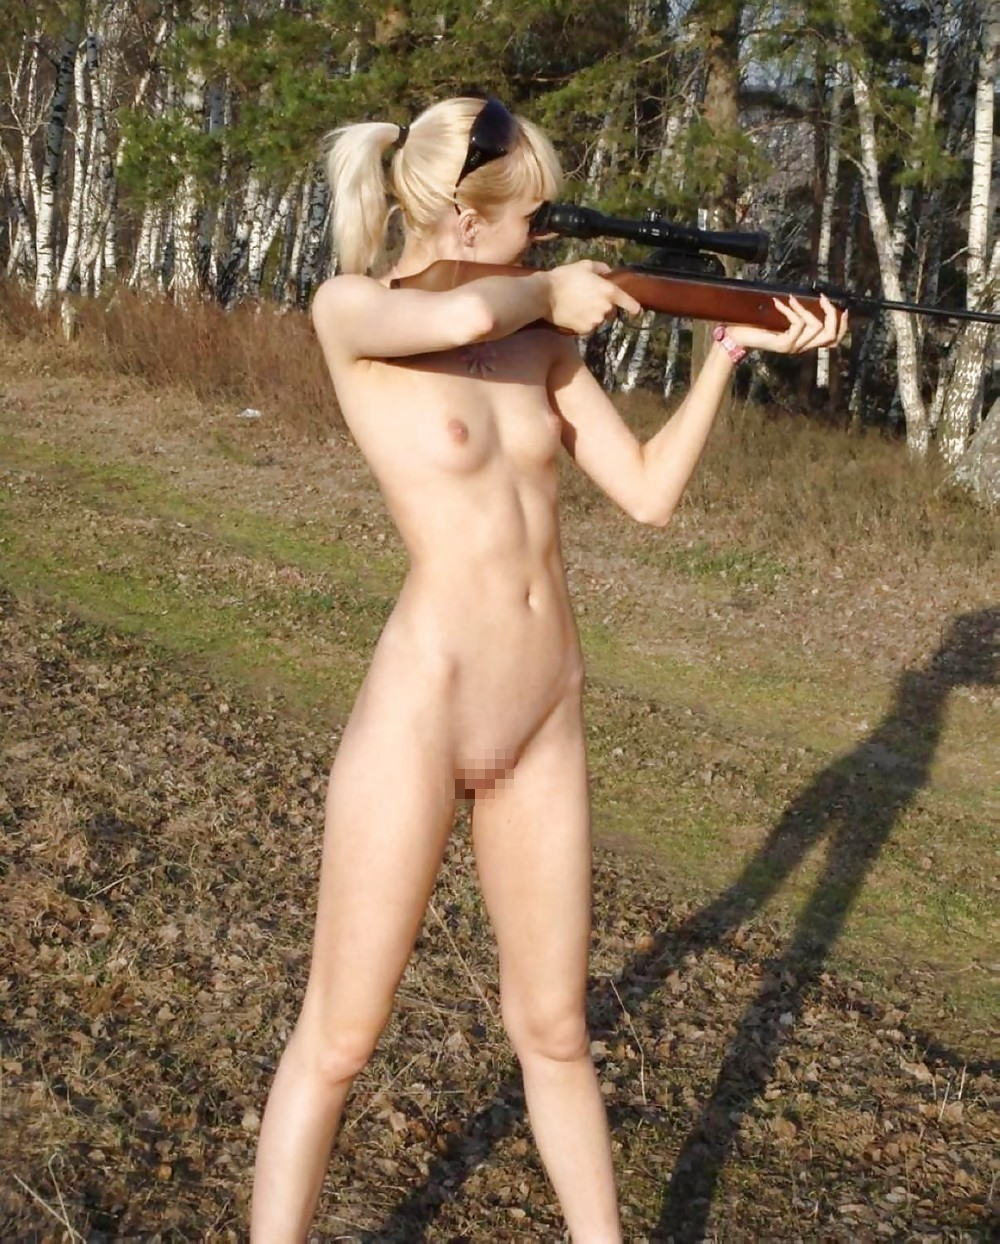 naked women fucking with guns